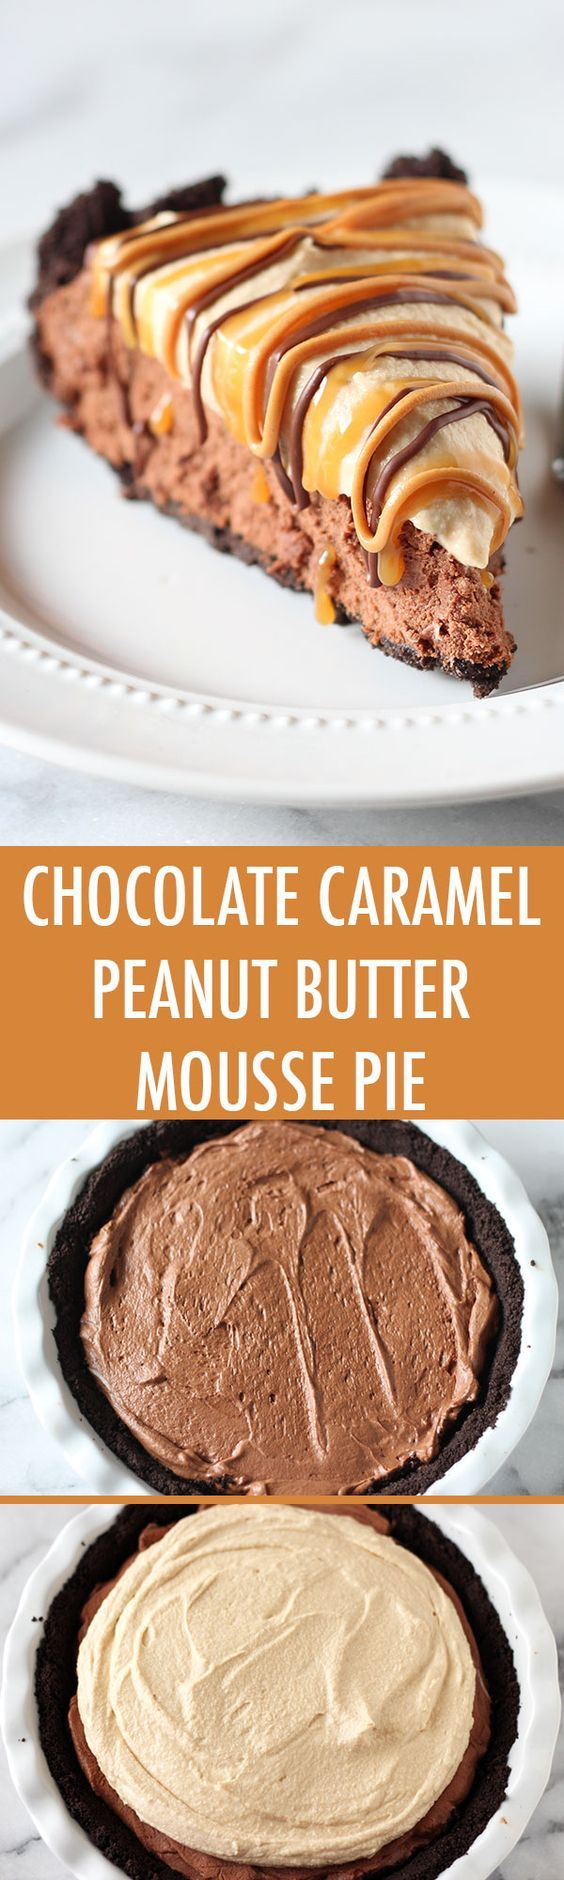 chocolate caramel peanut butter mousse pie